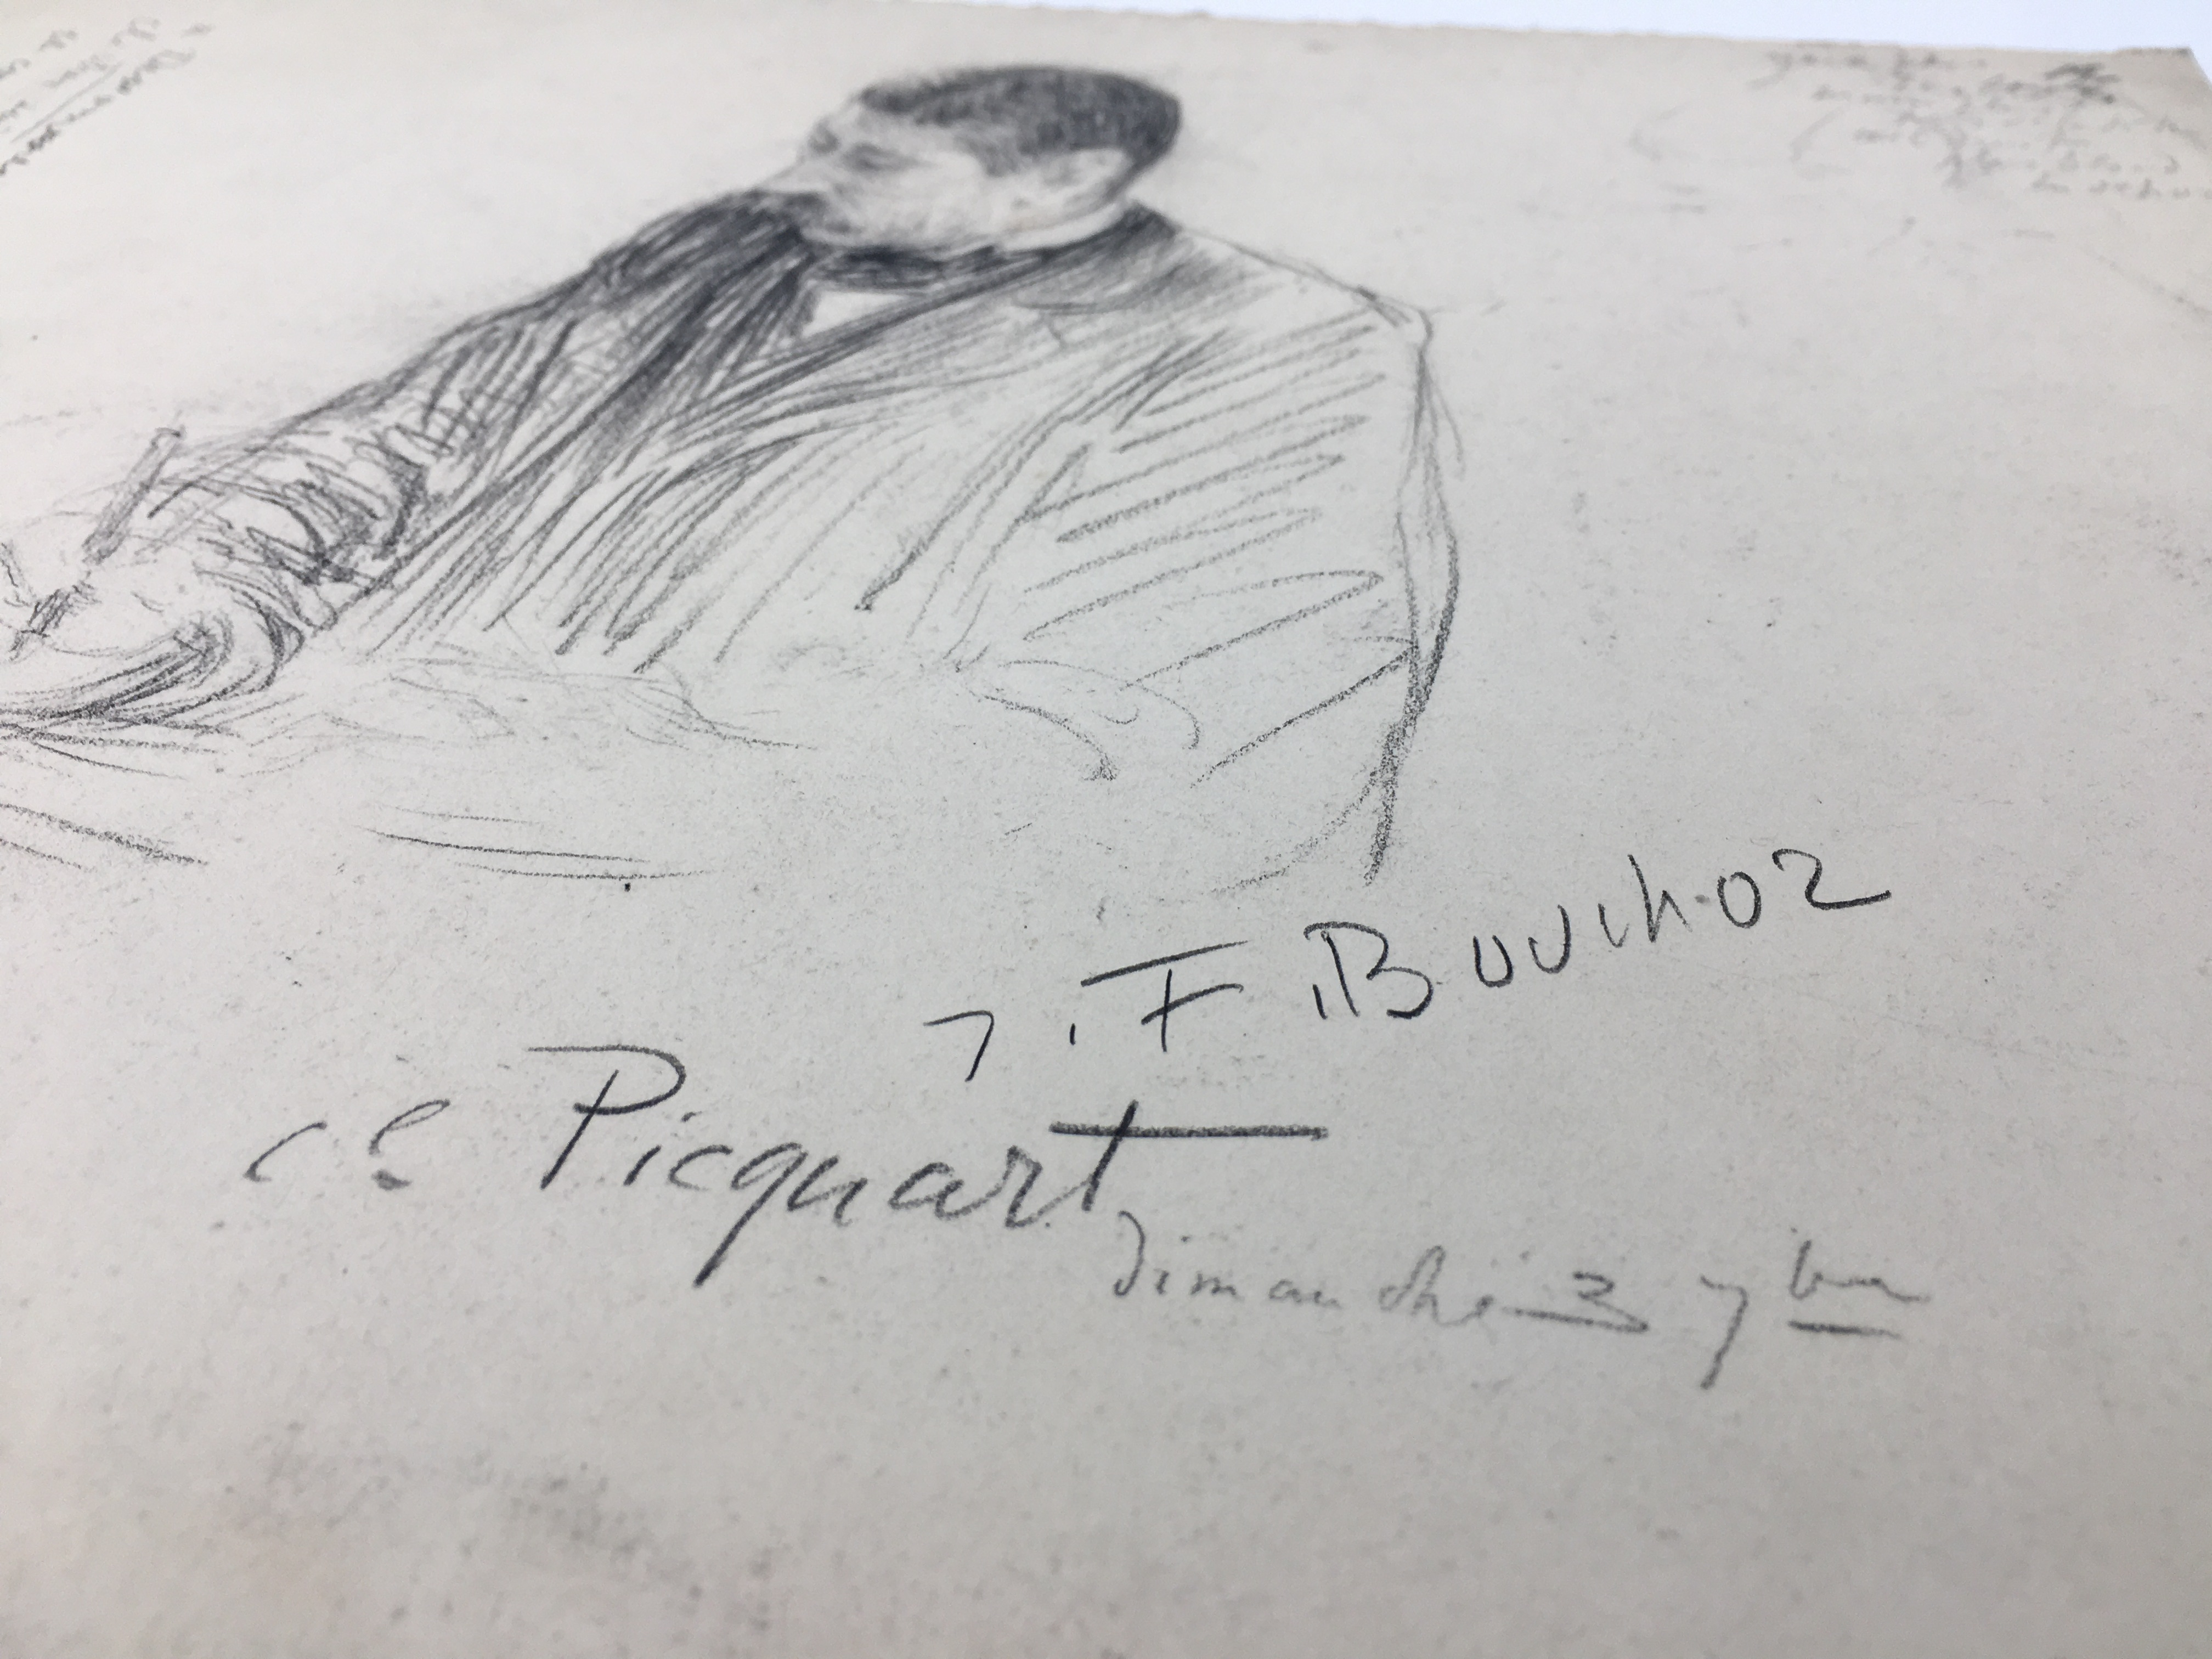 J'Accuse Newspaper, Emile Zola Quote, Signed Dreyfus Portrait, Rare Trial Drawings & Schwartzkoppen - Image 39 of 74